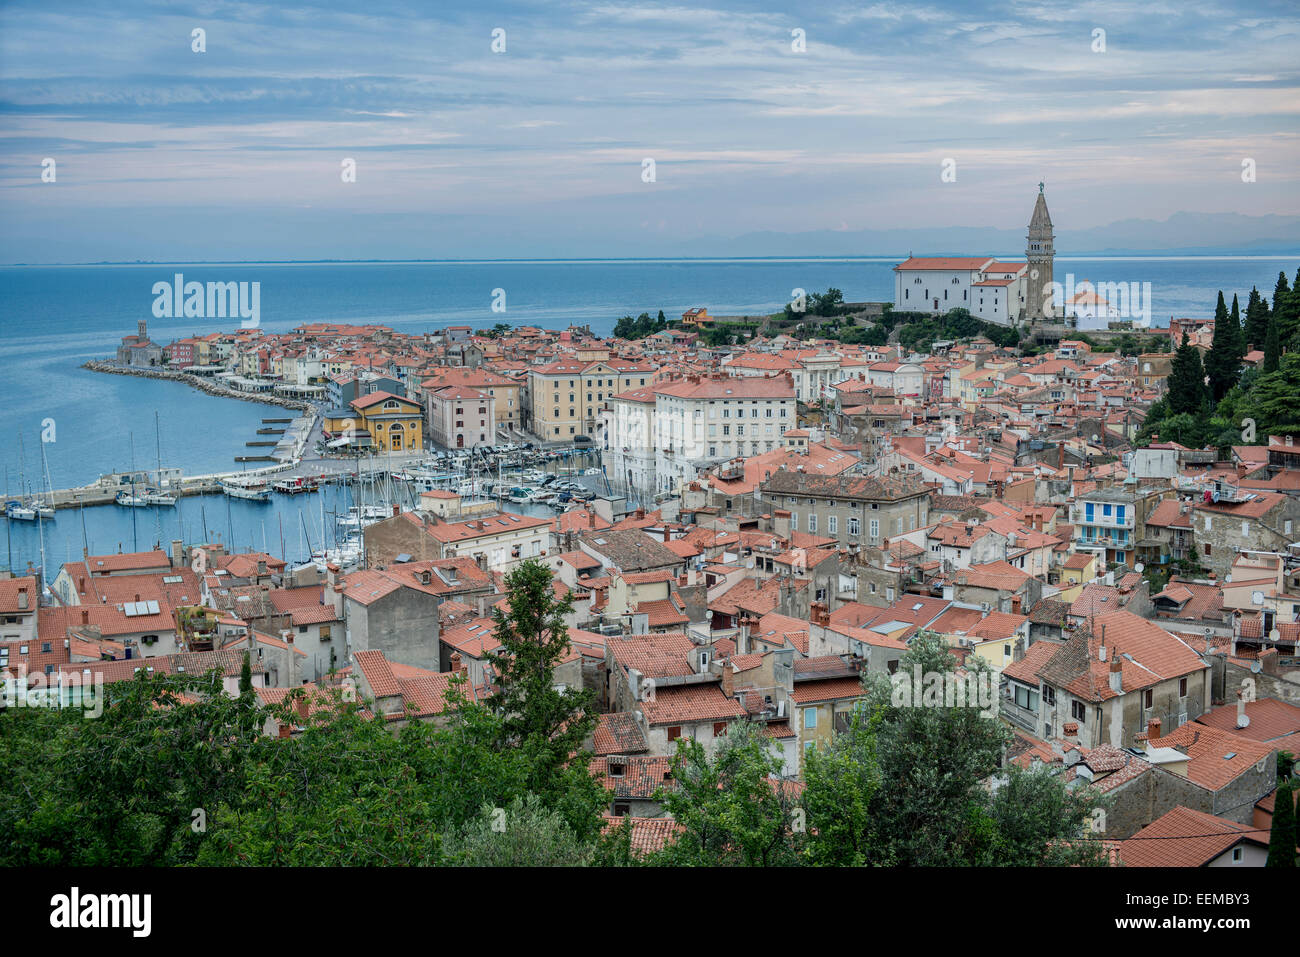 Aerial view of buildings in cityscape, Piran, Coastal-Karst, Slovenia - Stock Image